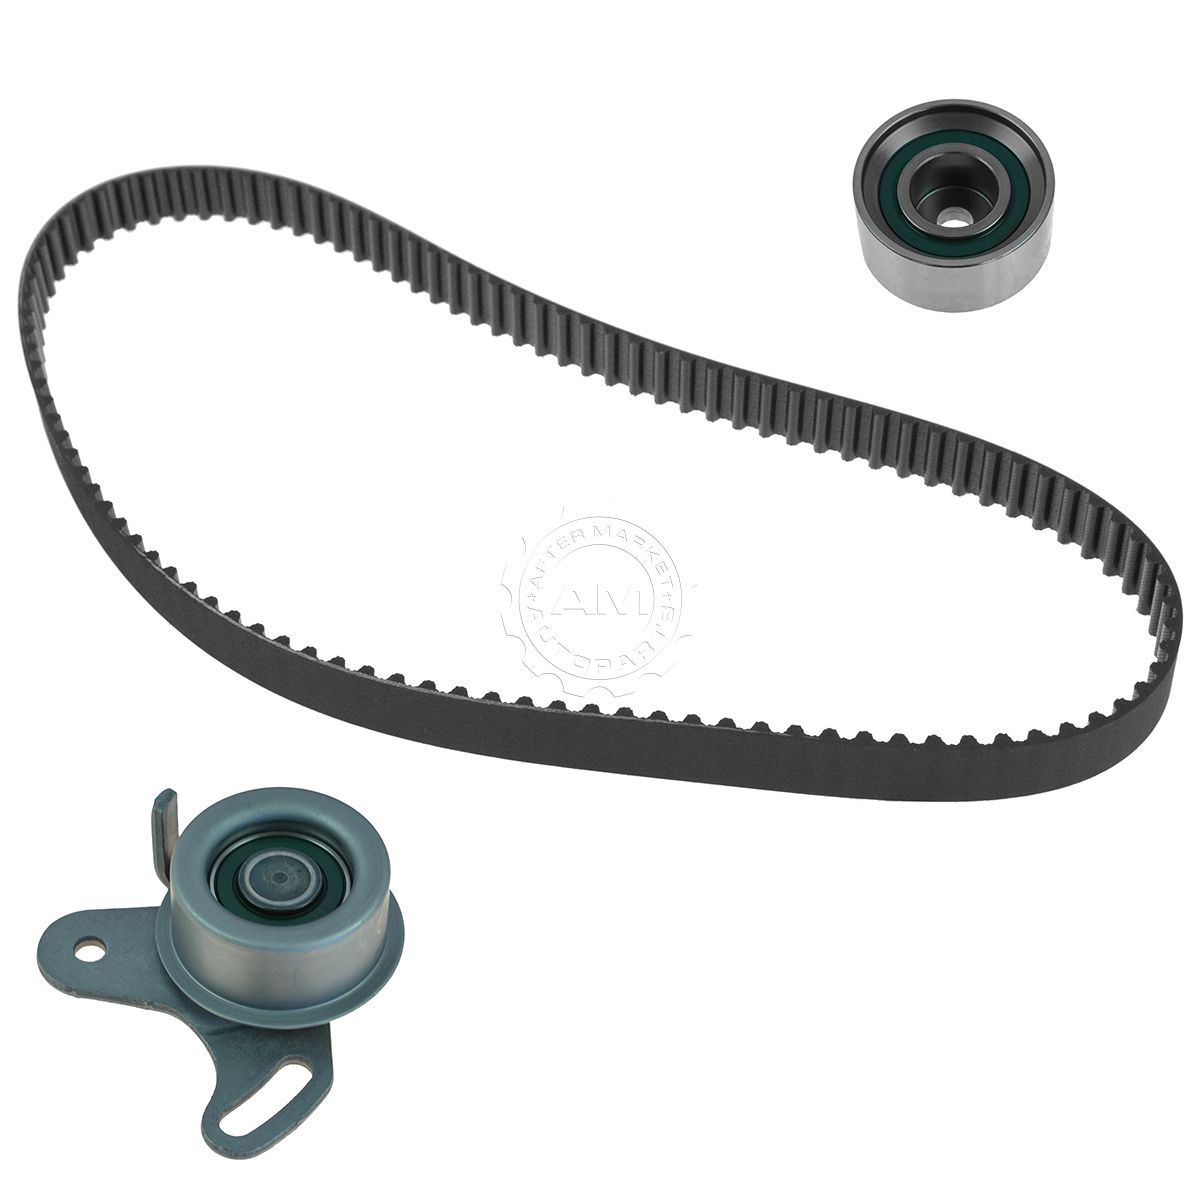 GATES TCK282 Timing Belt & Component Kit For Accent Rio